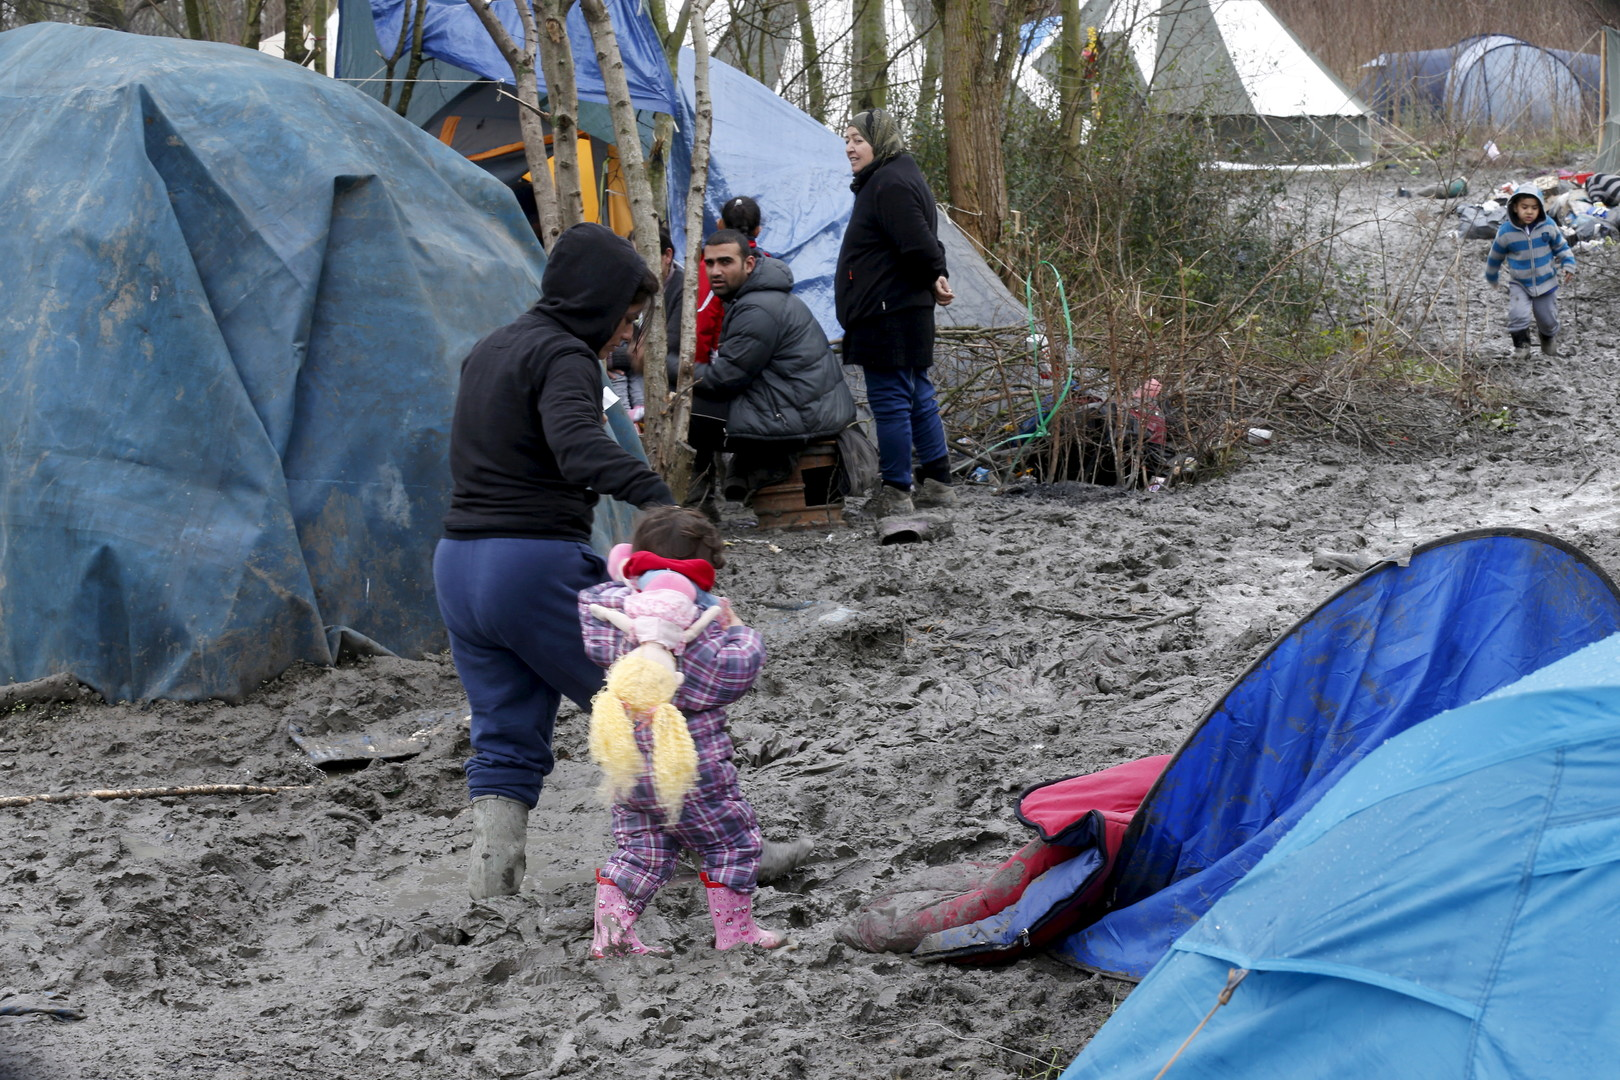 De fortes pluies dégradent les conditions humanitaires dans le camp de Grande-Synthe (PHOTOS)